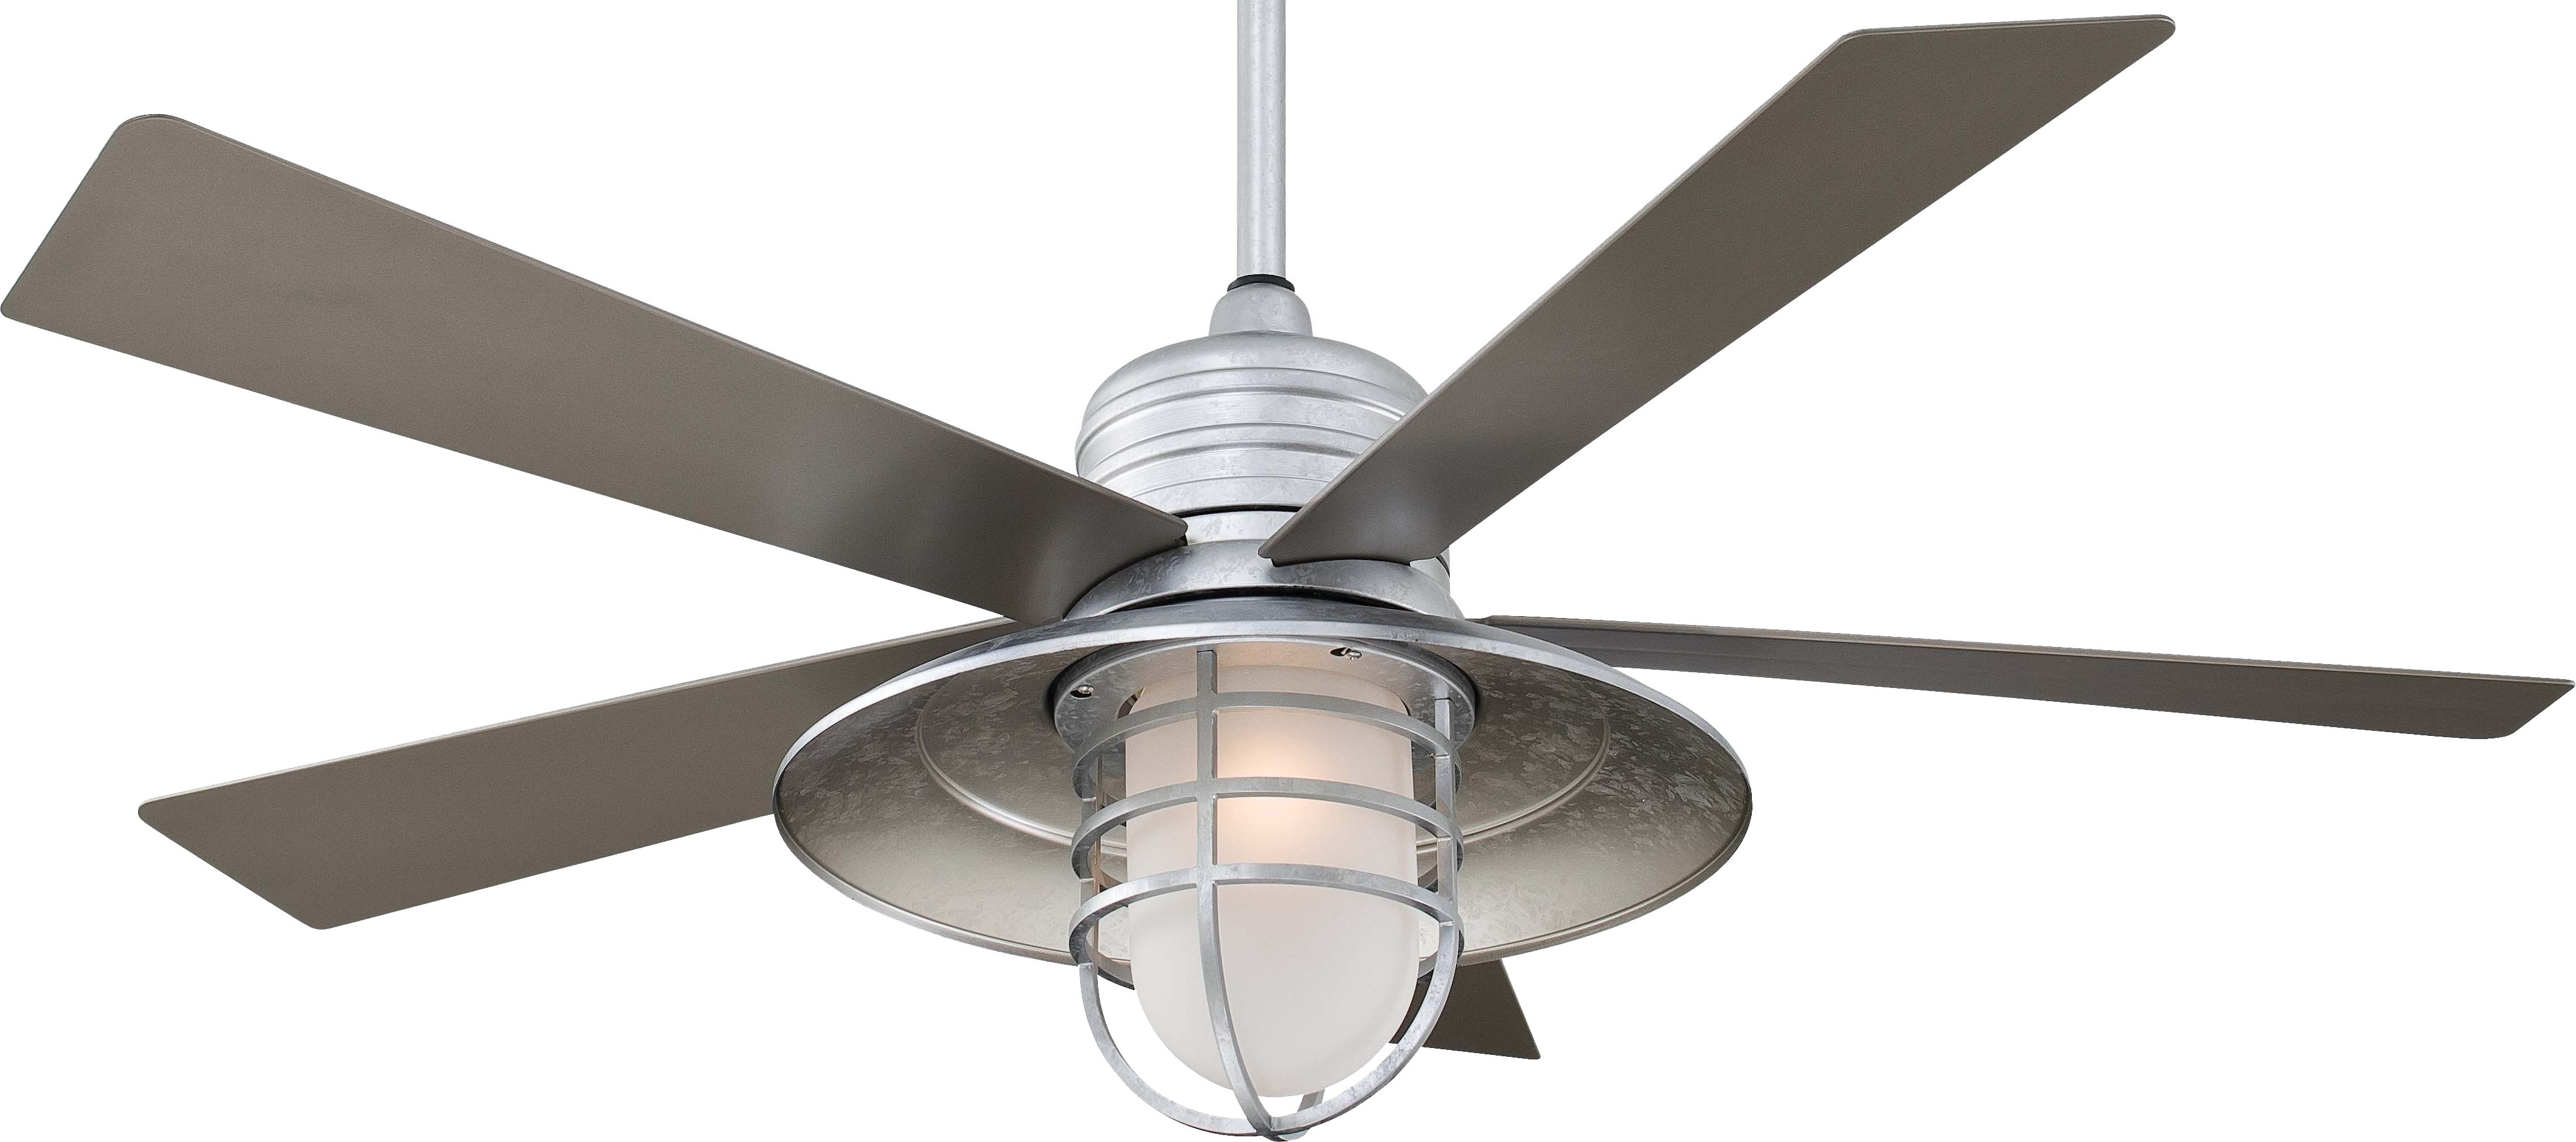 Famous Wet Rated Ceiling Fans With Light Outstanding Outdoor Ceiling Fan In Wet Rated Outdoor Ceiling Fans With Light (View 6 of 20)